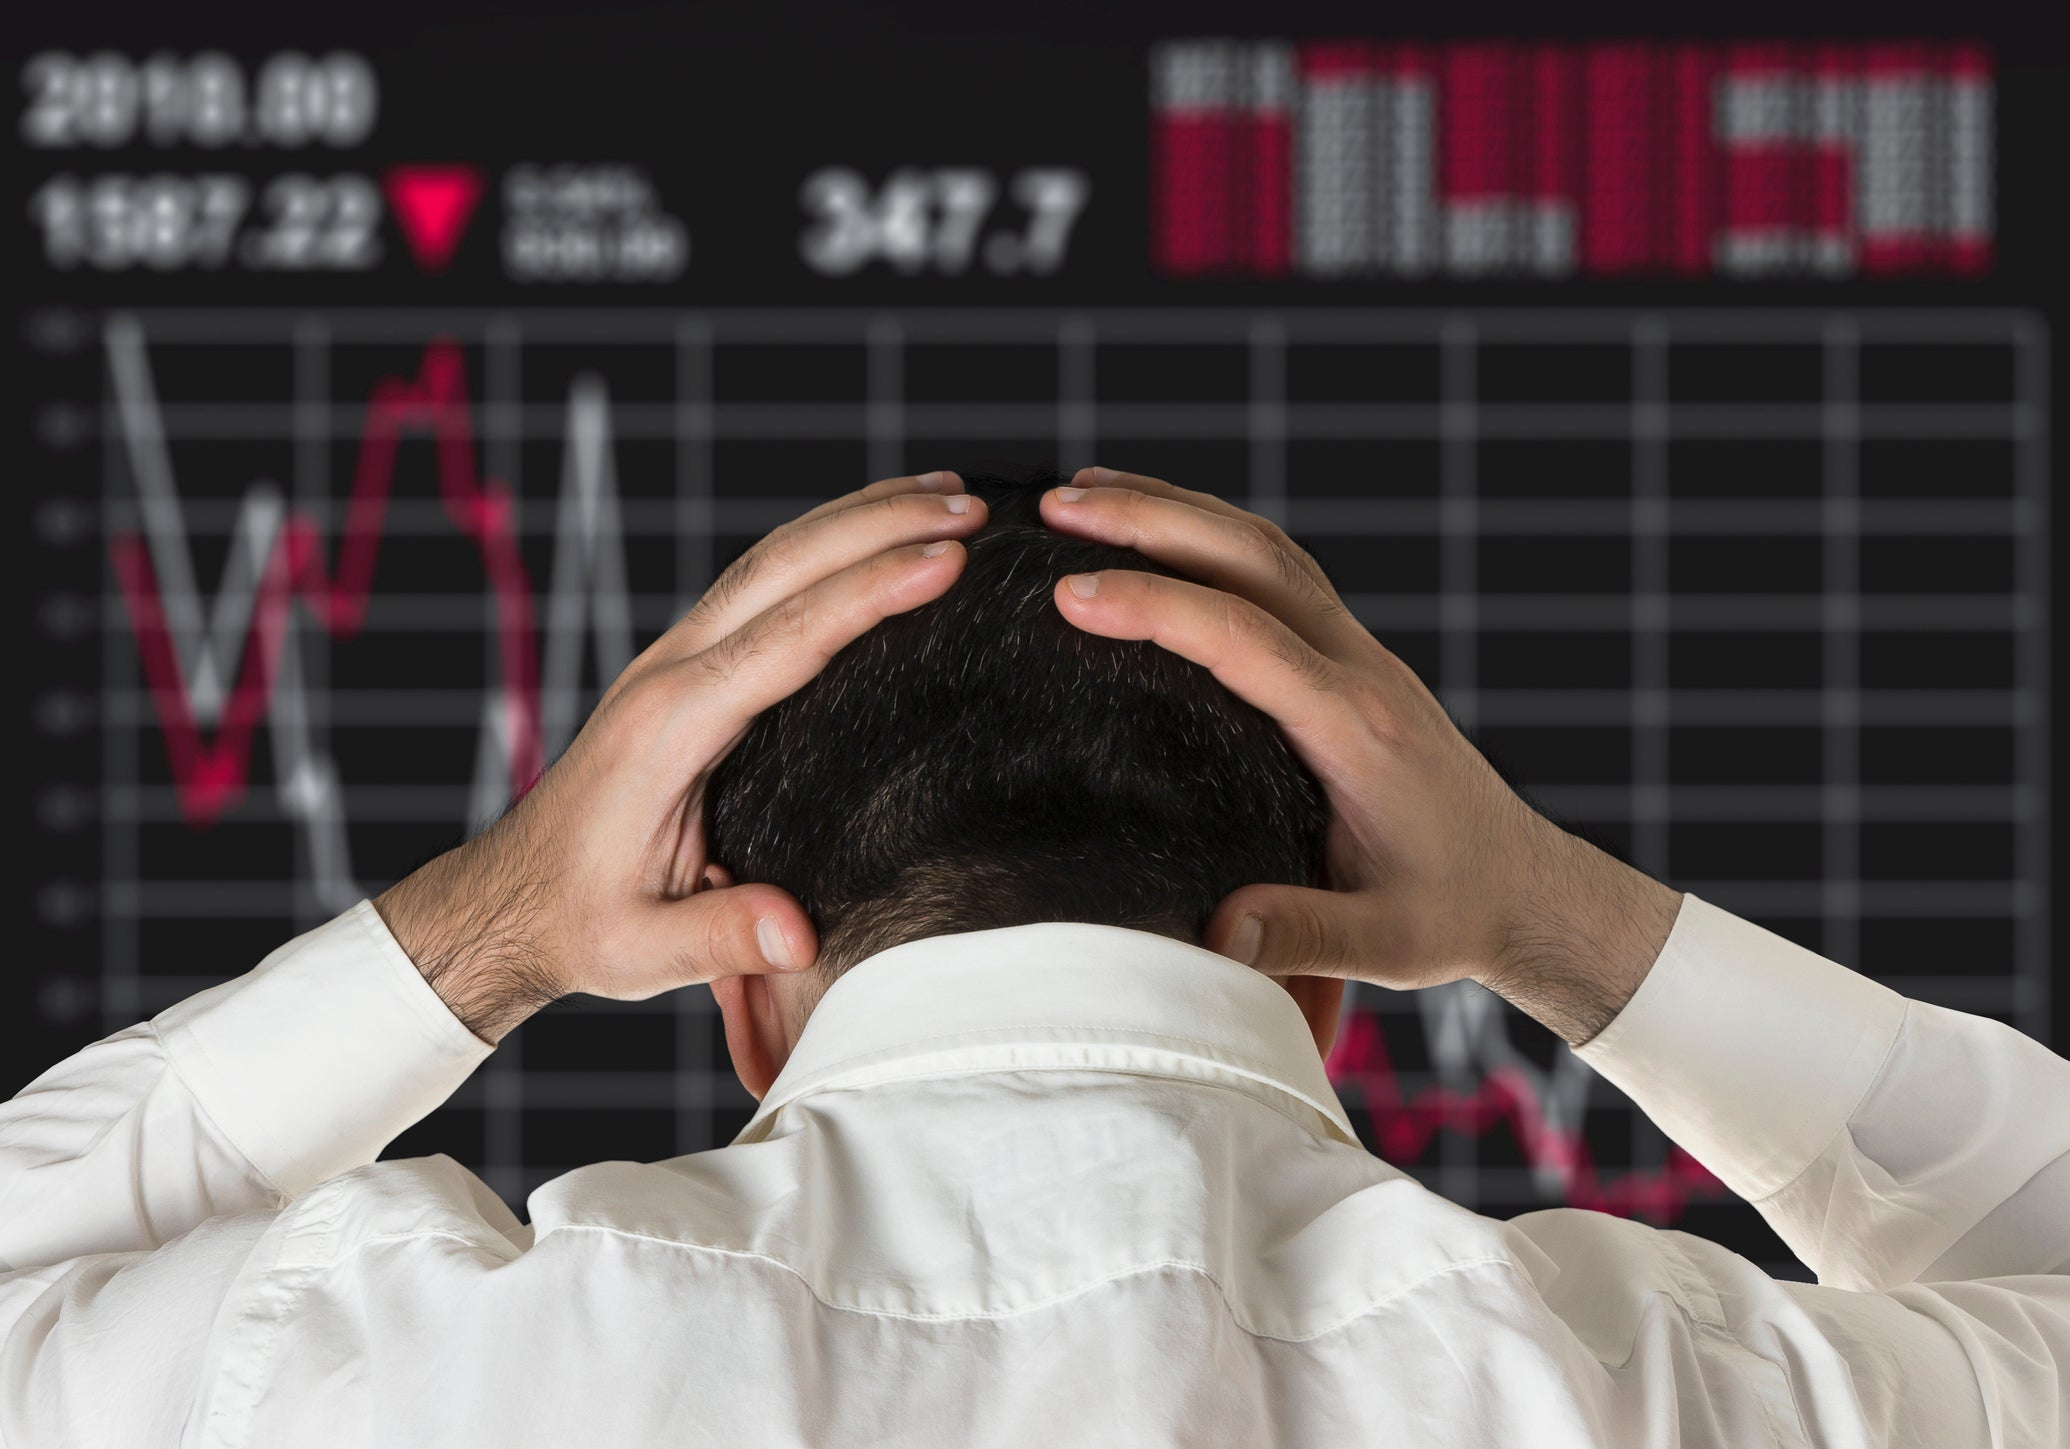 A man holds his head in his hands while staring at a declining stock price chart.